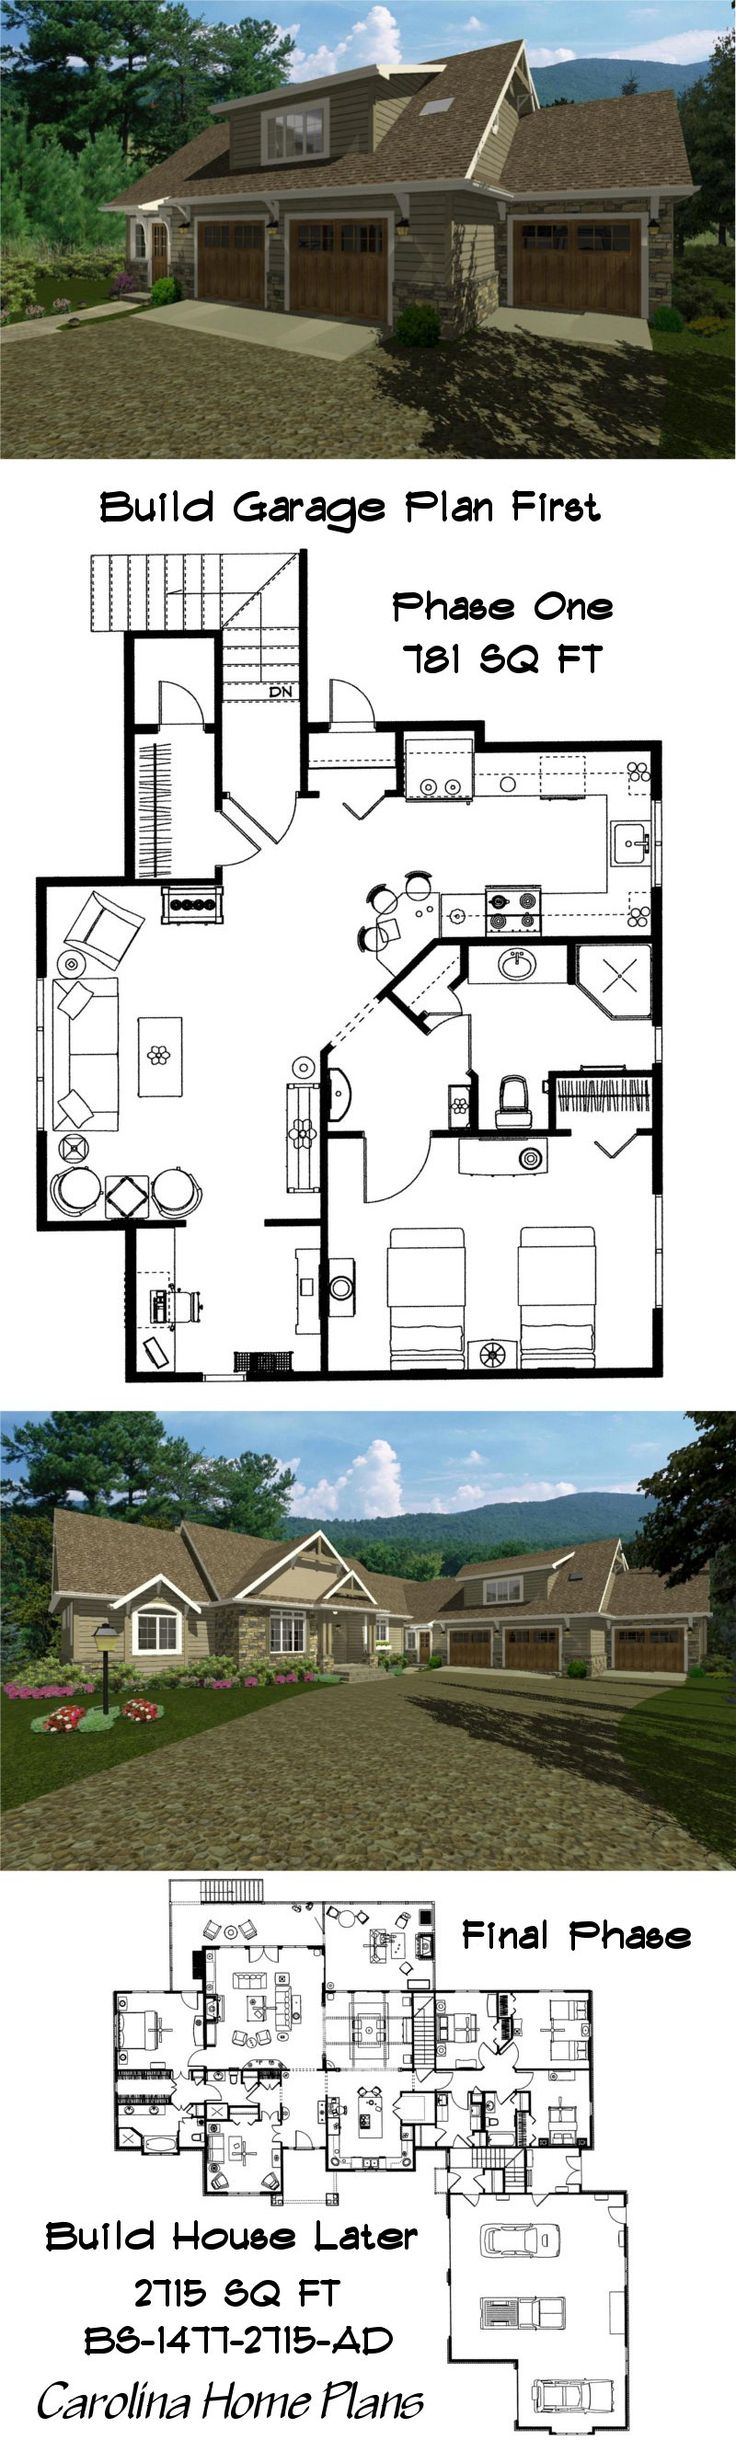 best 20 garage apartment plans ideas on pinterest 3 bedroom build this delightful 1 bedroom garage apartment first to live in while building the luxurious craftsman